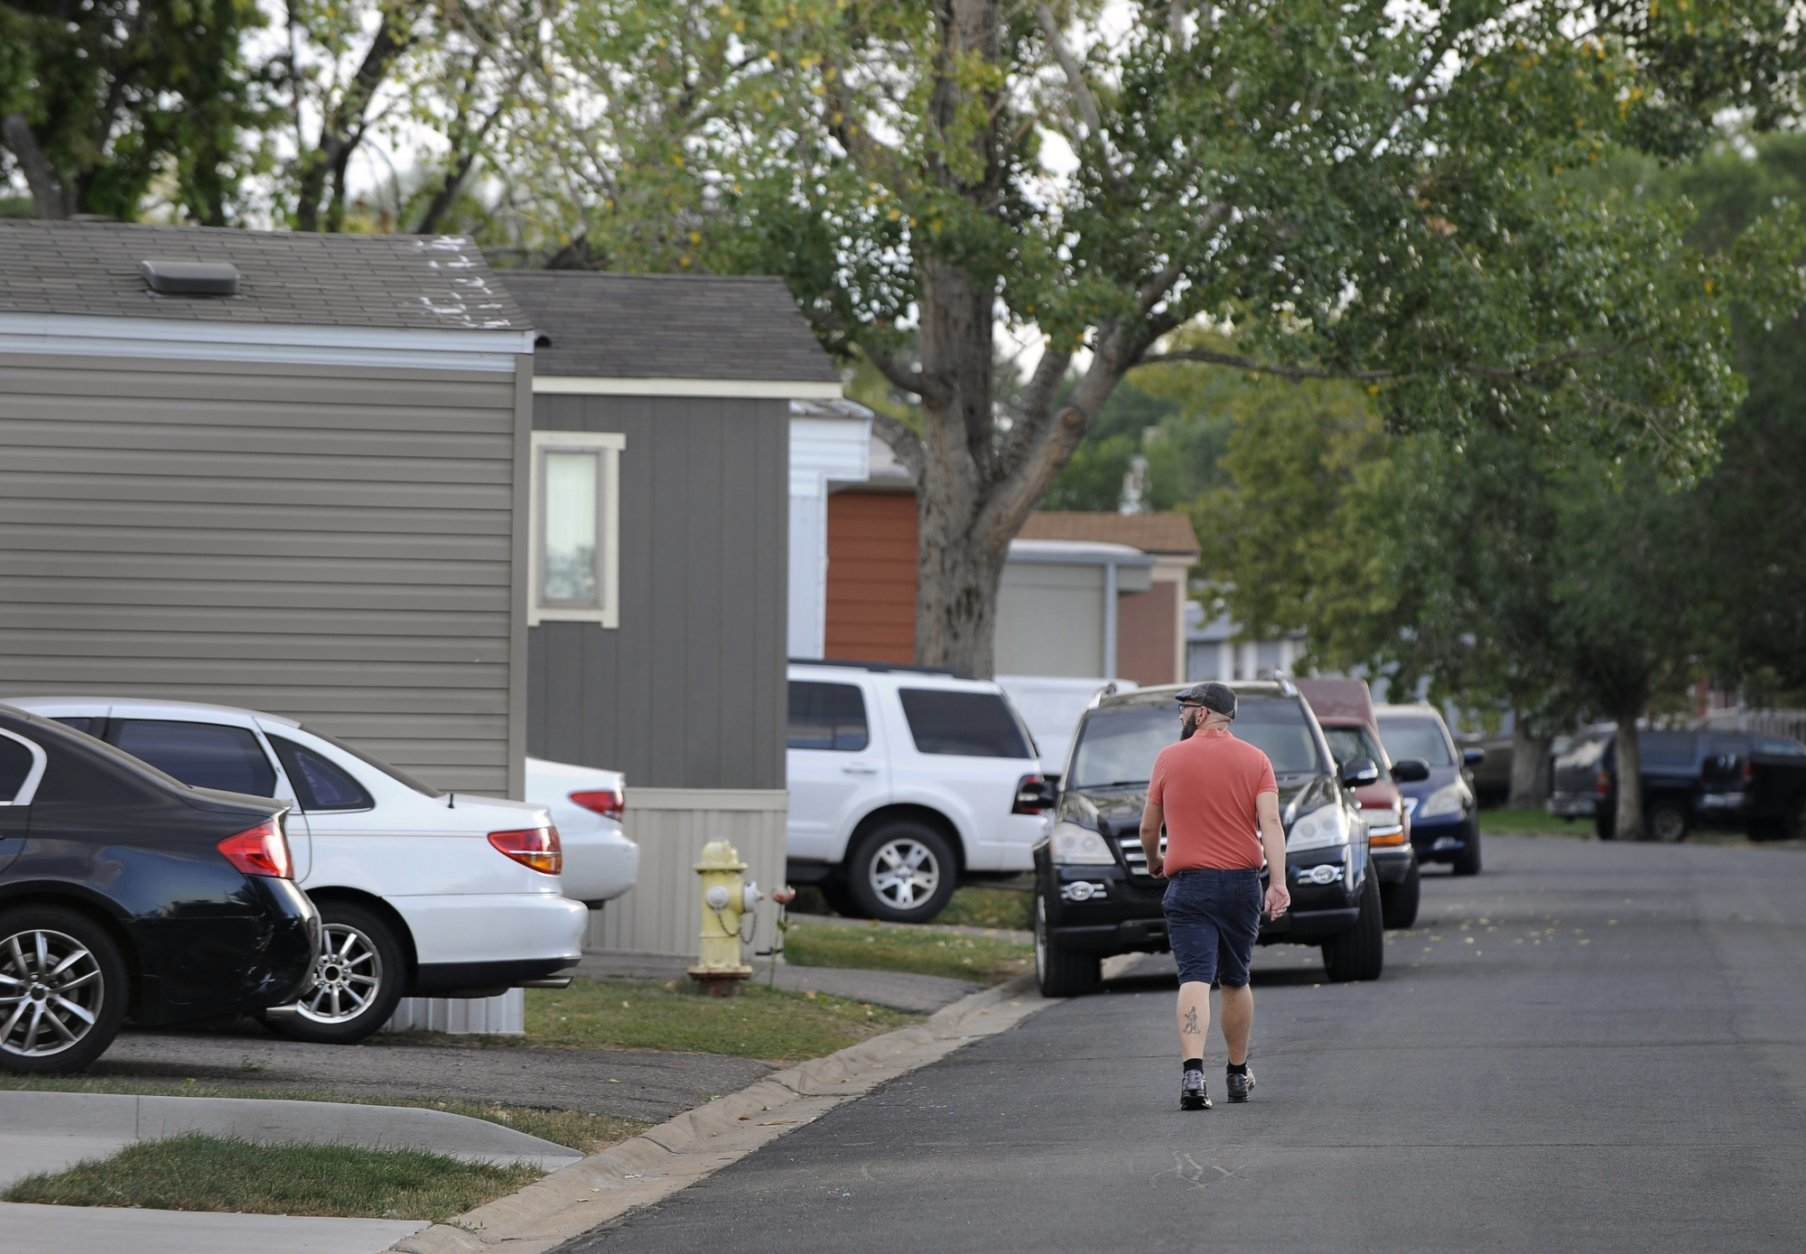 <p>In this Aug. 30th 2019 photo shows residents of Lamplighter Village, a manufactured and mobile home park, spending time outdoors in their community in Federal Heights, Colo. Across Colorado, where the housing crisis impacts both rural and urban towns, the strife between mobile home park residents and park owners approaches a boiling point. The business model &#8212; in which homeowners pay lot rent to park their houses on someone else&#8217;s land &#8212; capitalizes on the immobility and economic fragility of tenants who often can&#8217;t afford to move or live anywhere else.(Kathryn Scott/The Colorado Sun)</p>